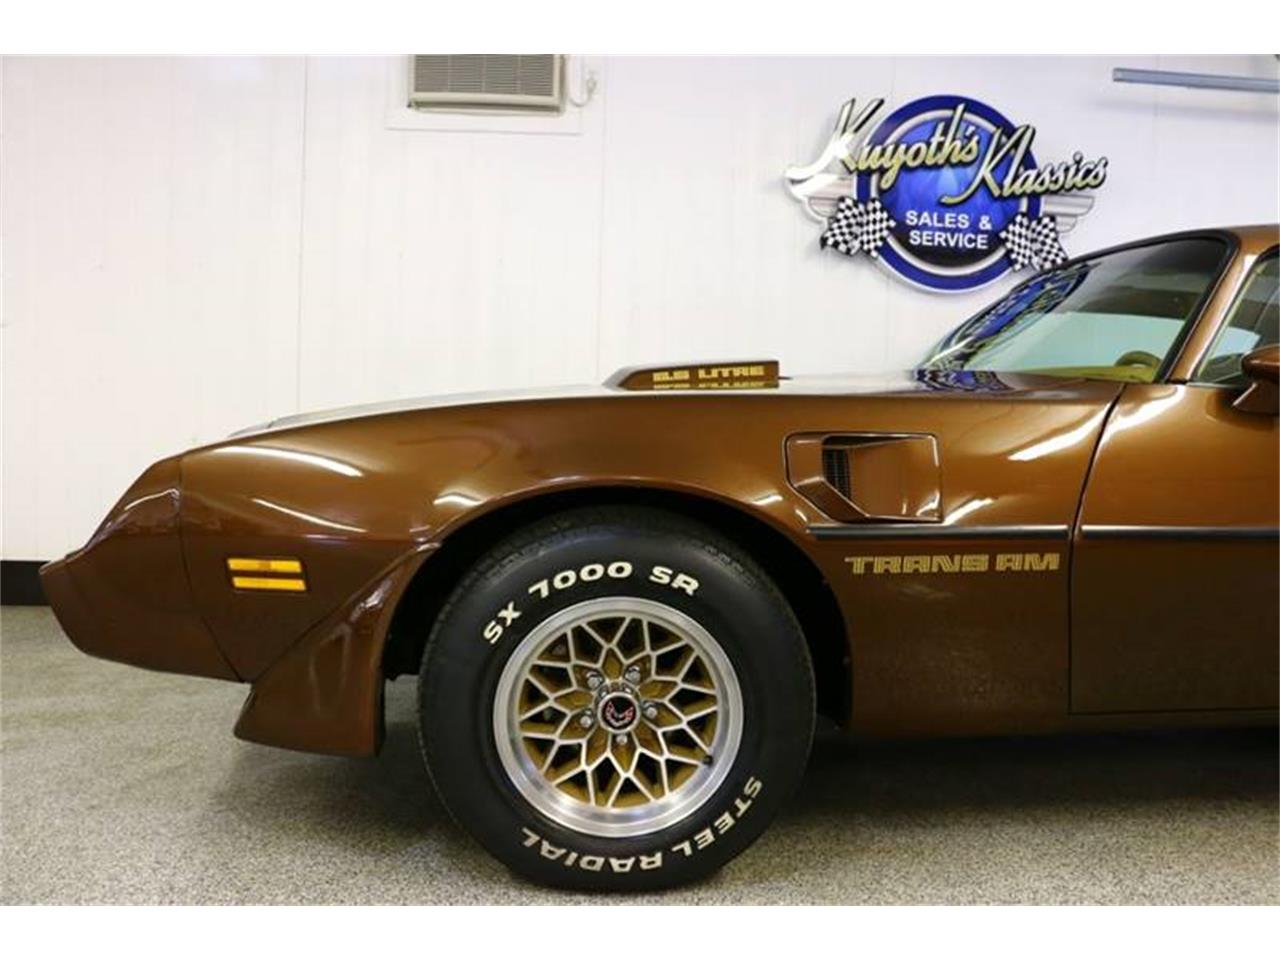 1979 Pontiac Firebird Trans Am for sale in Stratford, WI – photo 7